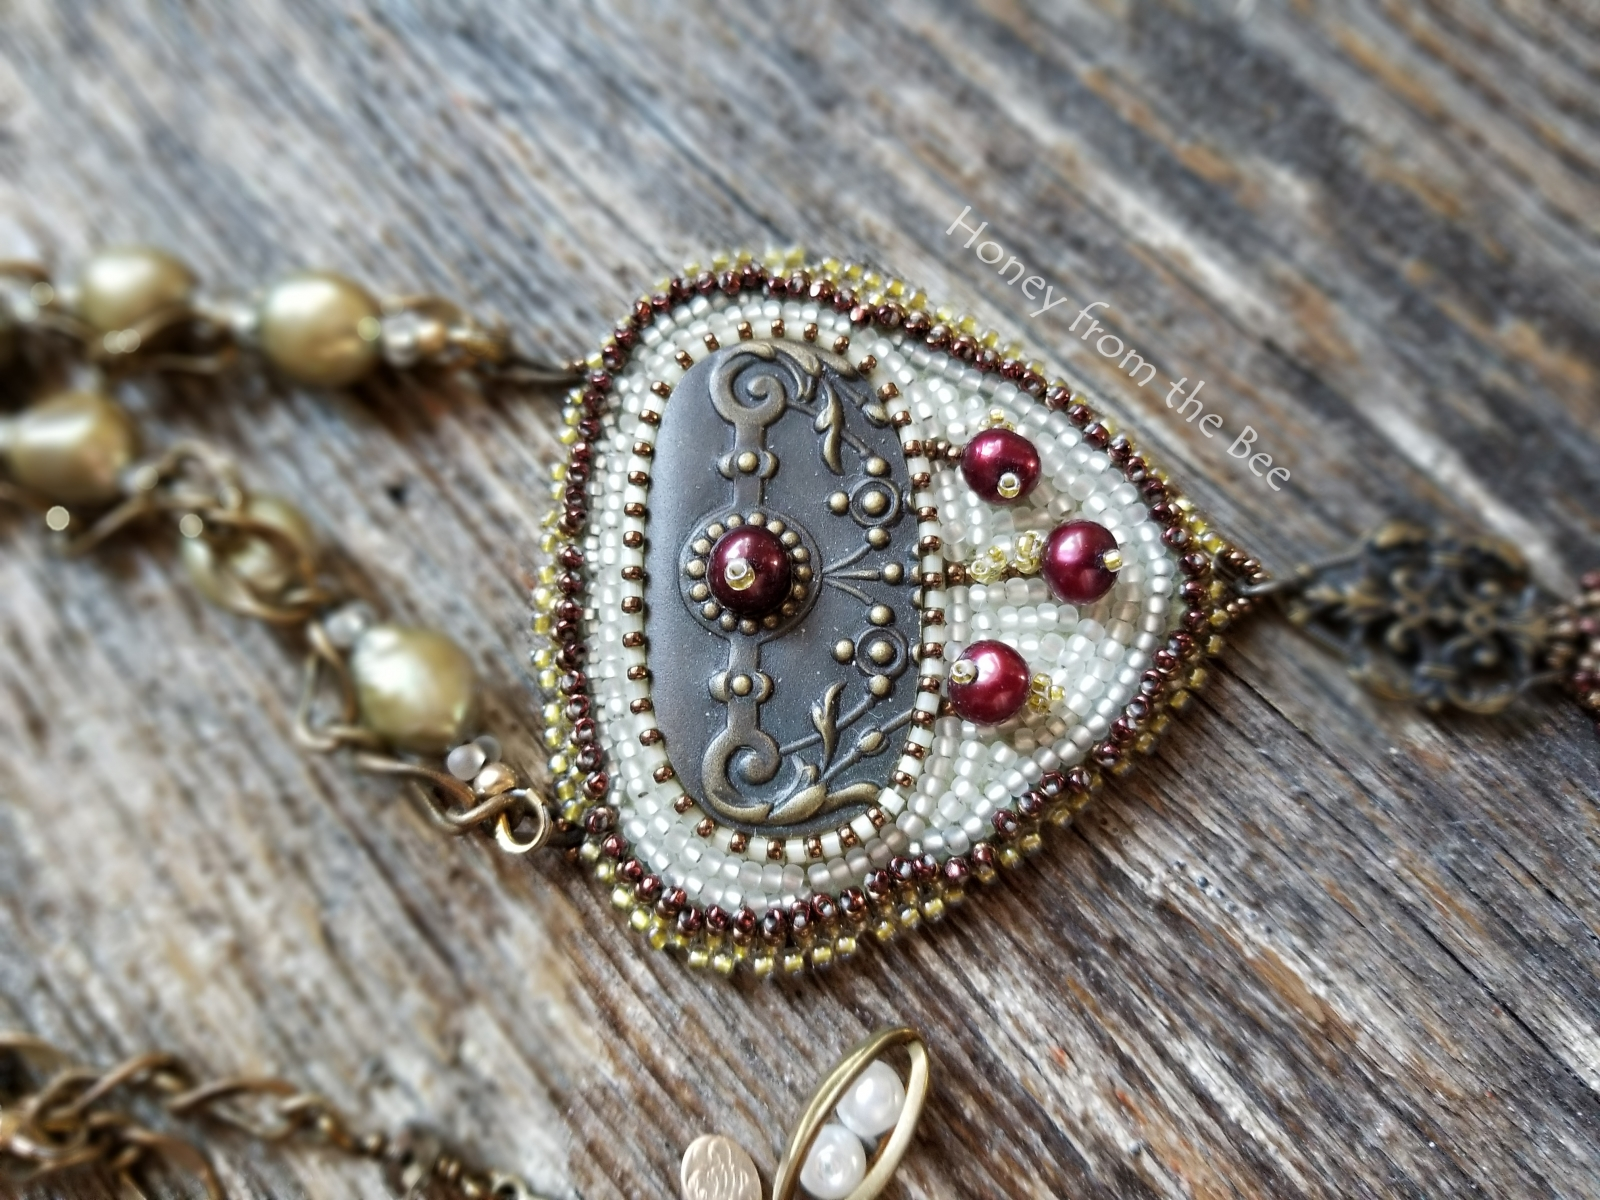 Bead embroidered statement necklace by Honey from the Bee